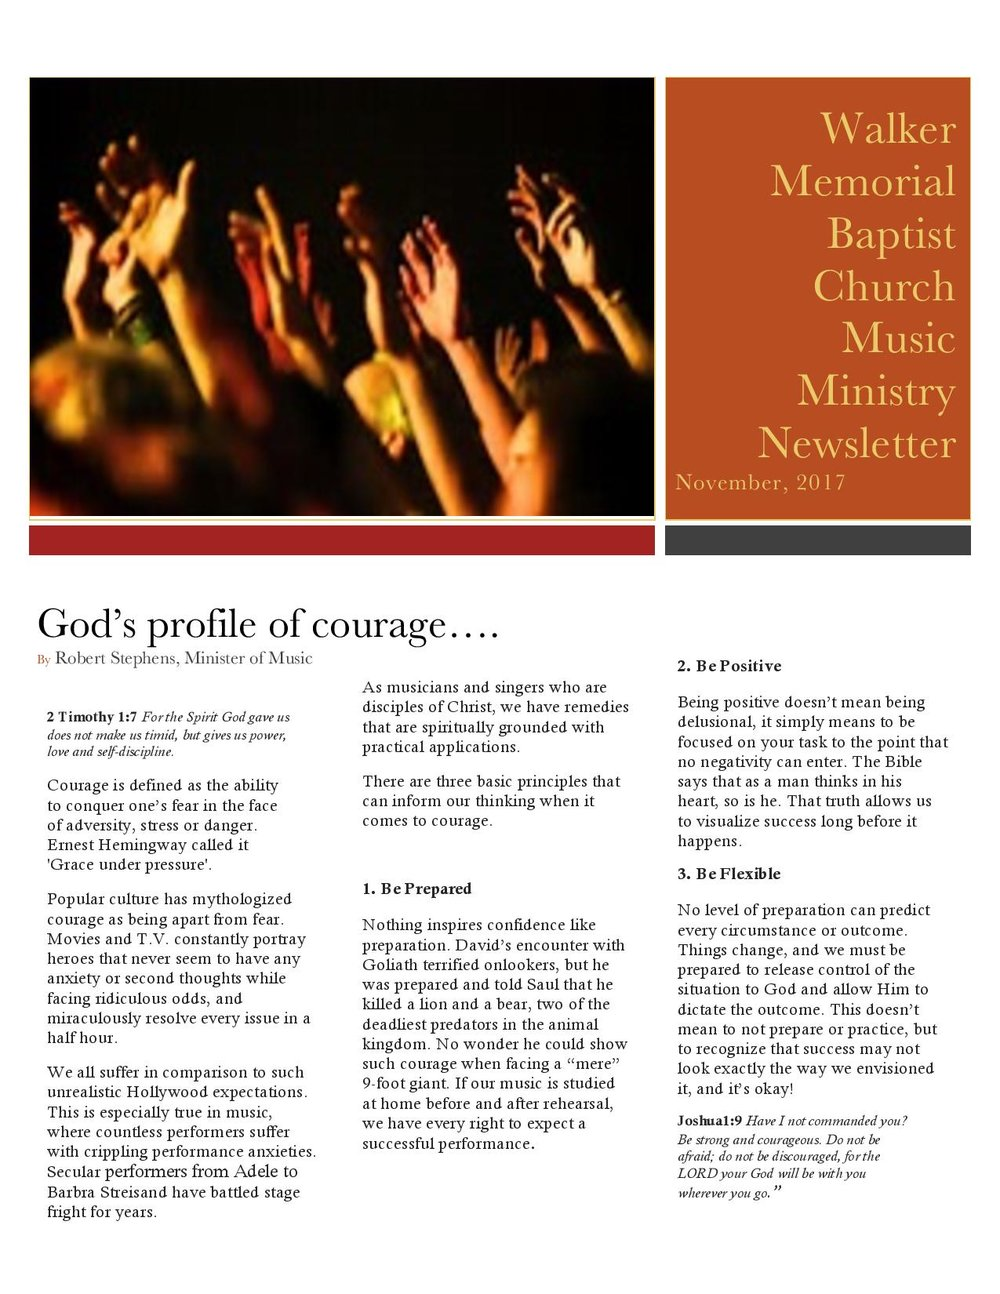 WMBC Music Ministry Newsletter November 2017  (Autosaved)-page-001.jpg